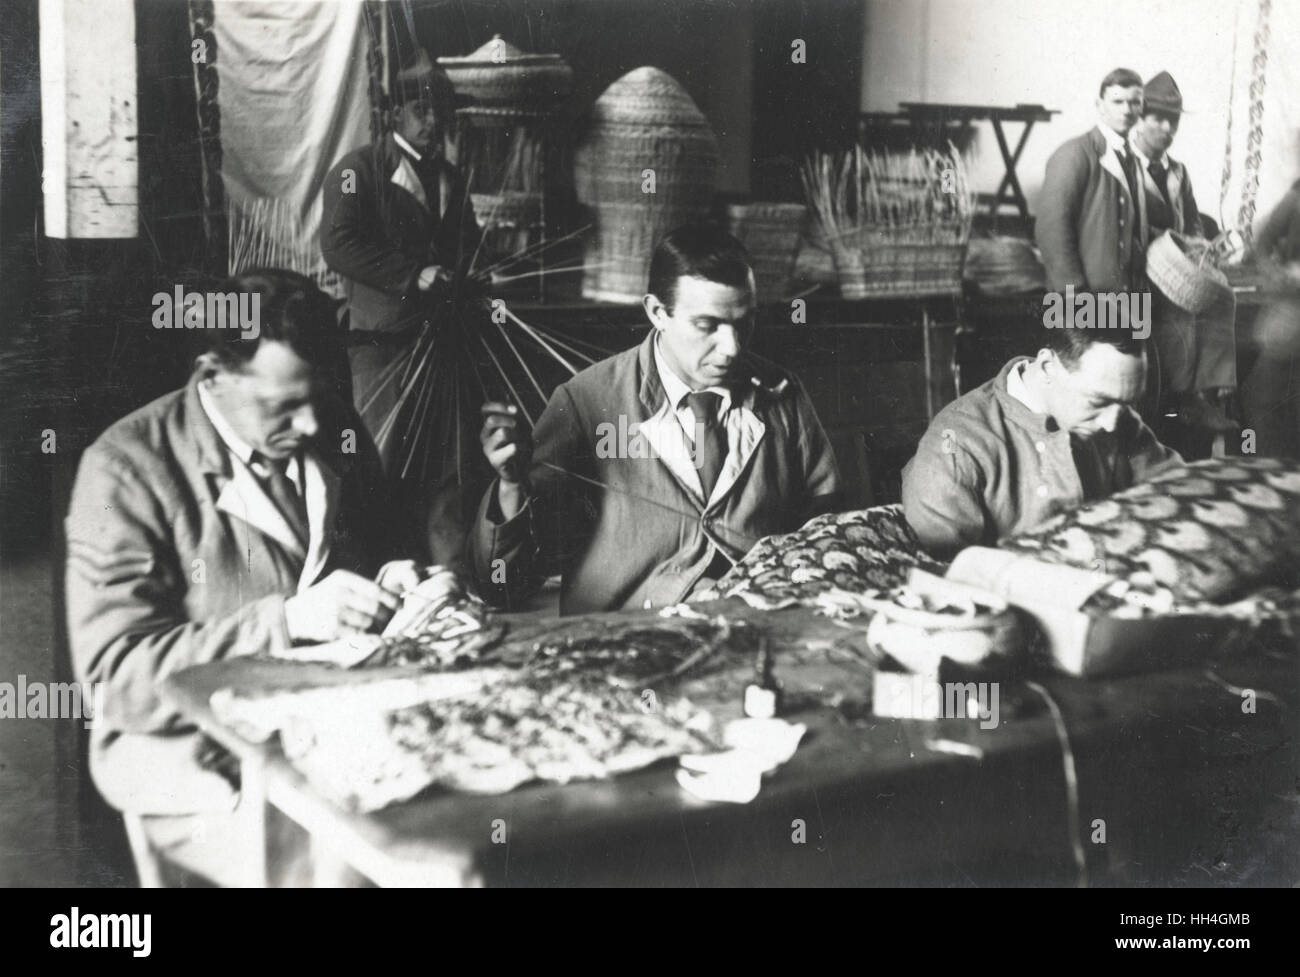 Wounded First World War soldiers wearing Hospital Blues, making baskets and sewing basket linings in the workshops - Stock Image